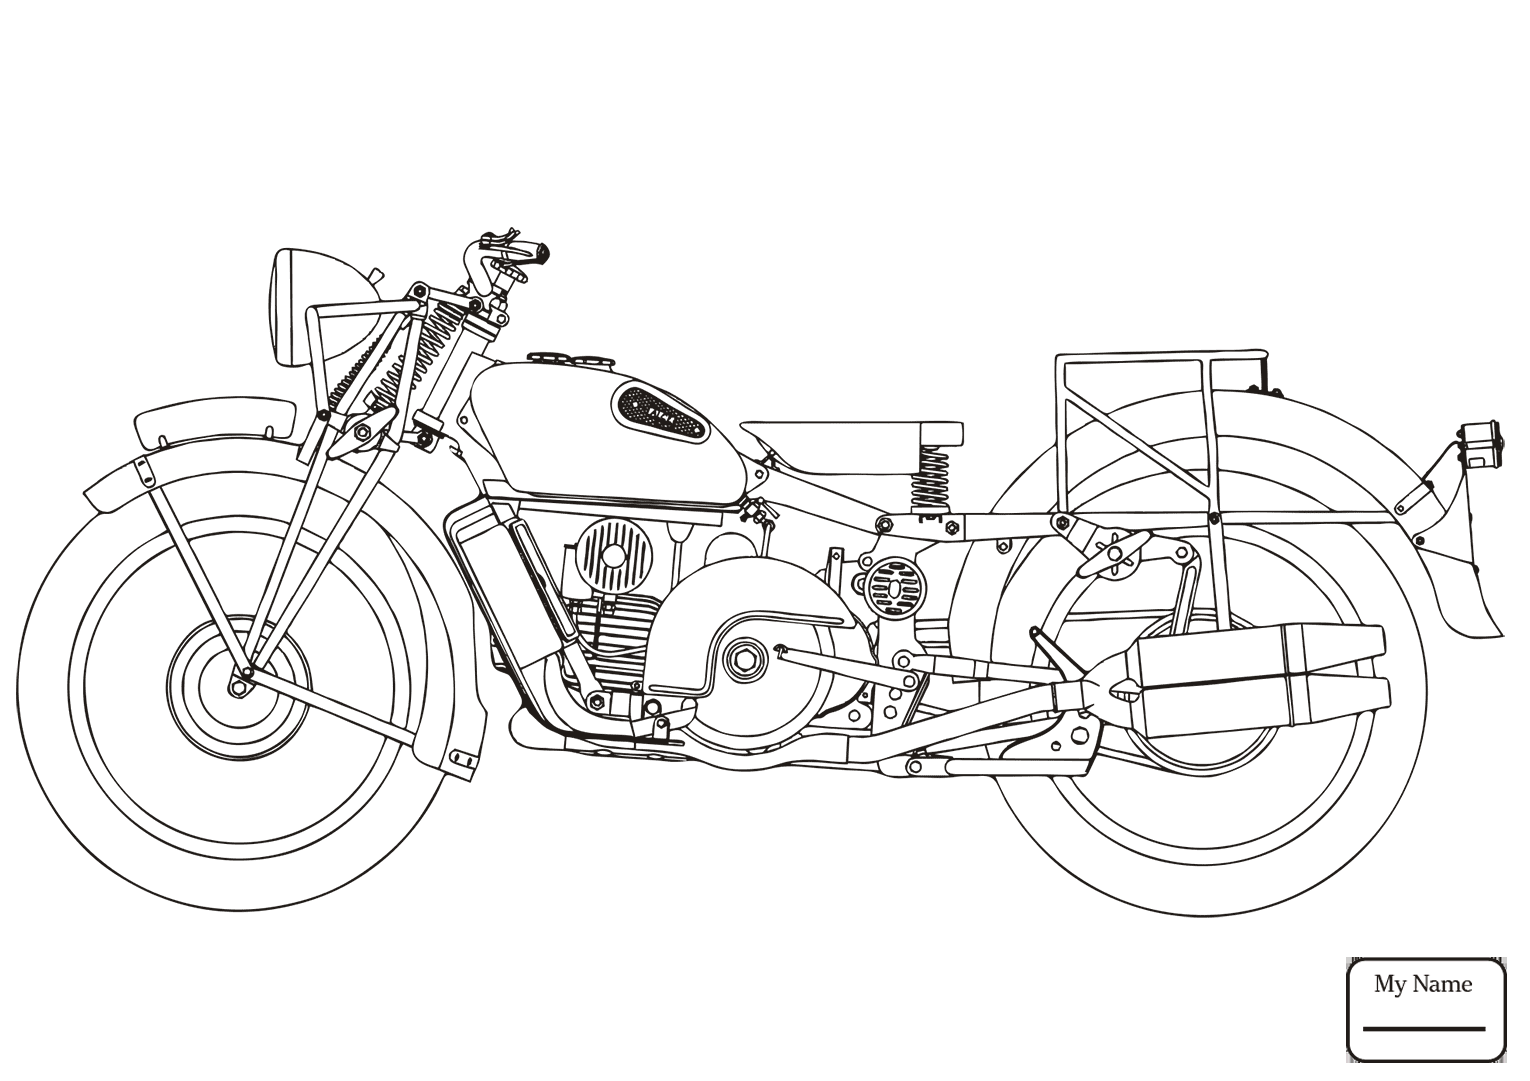 motorcycles drawing at getdrawings com